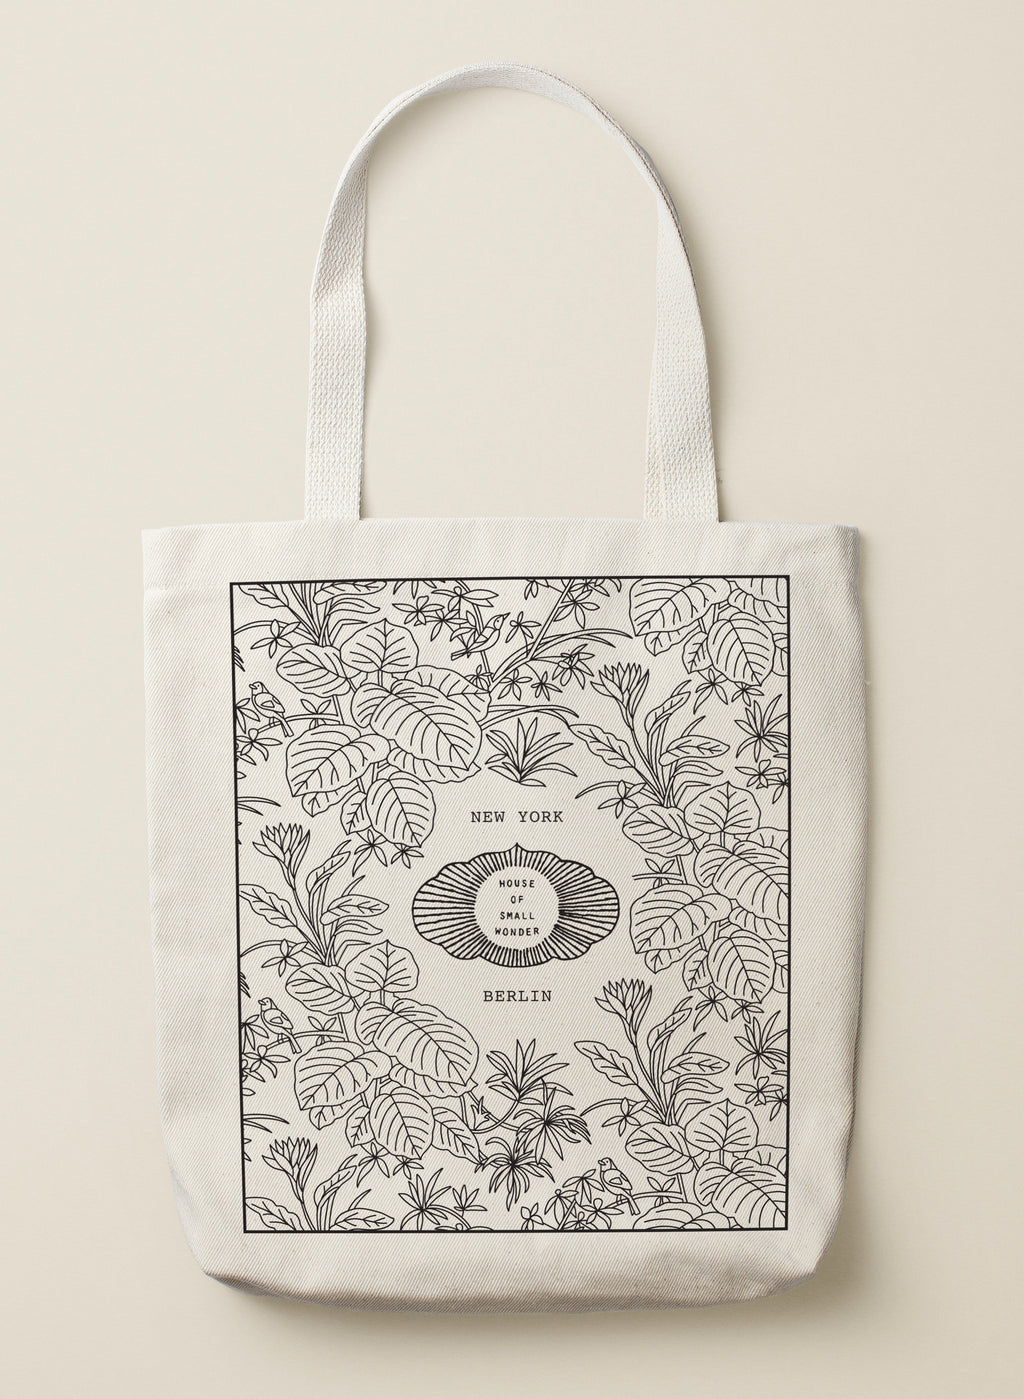 HOUSE OF SMALL WONDER TOTE BAG